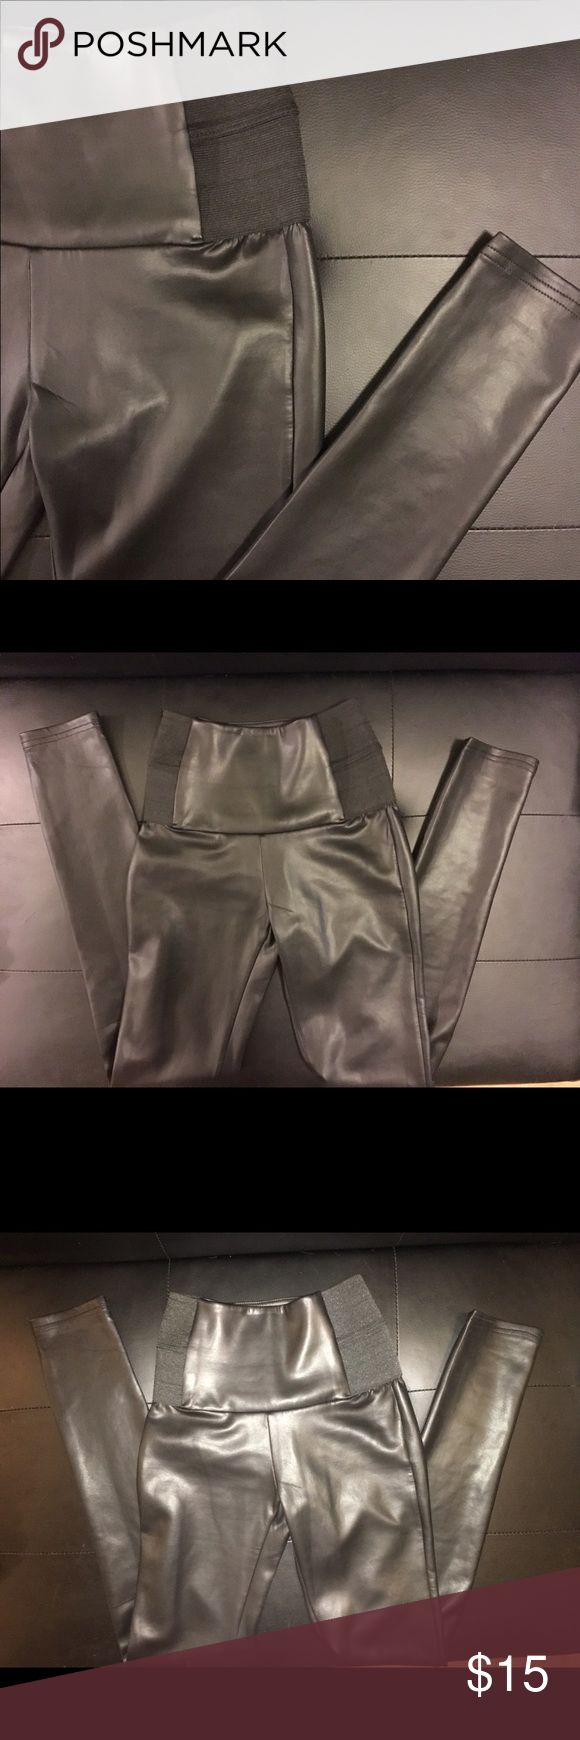 Leather tights🖤😈 Black leather tights. High waisted. Black bandage around waist gives you a flat tummy & sexy shape. Worn once, in great condition. Bundle to save 🖤 Pants Leggings